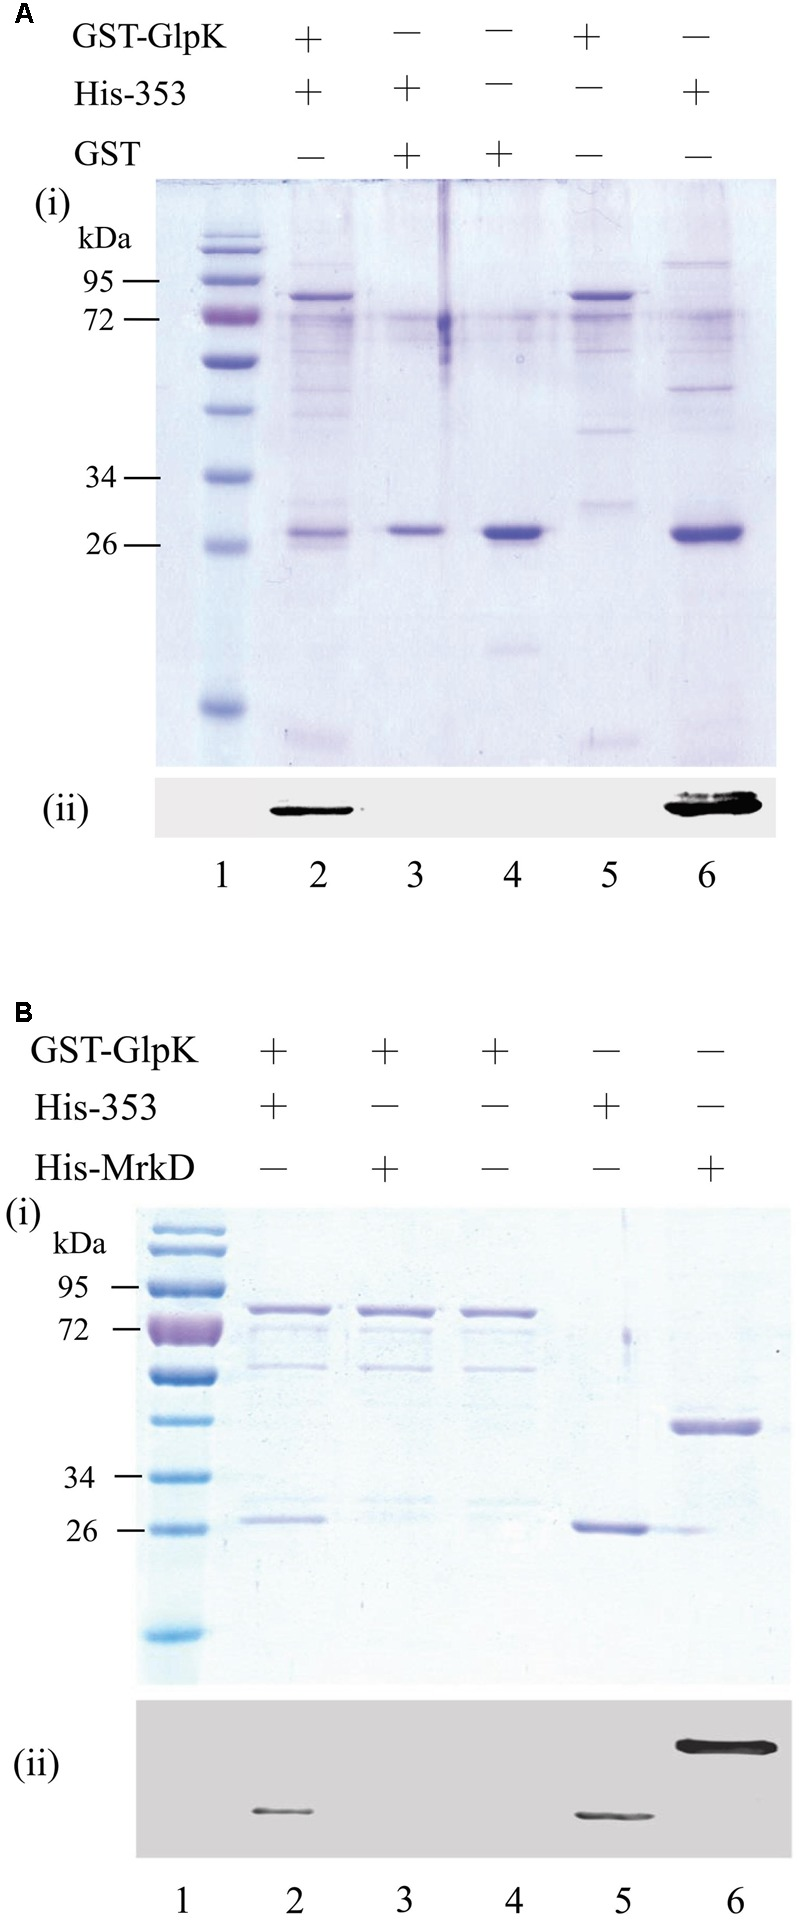 Interaction between KPN00353 and GlpK. GST-tagged GlpK (GST-GlpK) was allowed to interact with His-tagged protein (lane 2, 3 in A,B ), and then the proteins captured on GSH-Sepharose beads were analyzed by (i) SDS-PAGE followed by Coomassie Blue staining and (ii) Western blotting using anti-His antibody. The purified proteins were analyzed simultaneously with the control (lane 4, 5, 6 in A,B ). The protein marker is shown in lane 1. His-353, His-tagged KPN00353; His-MrkD, His-tagged MrkD; GST, glutathione S-transferase.